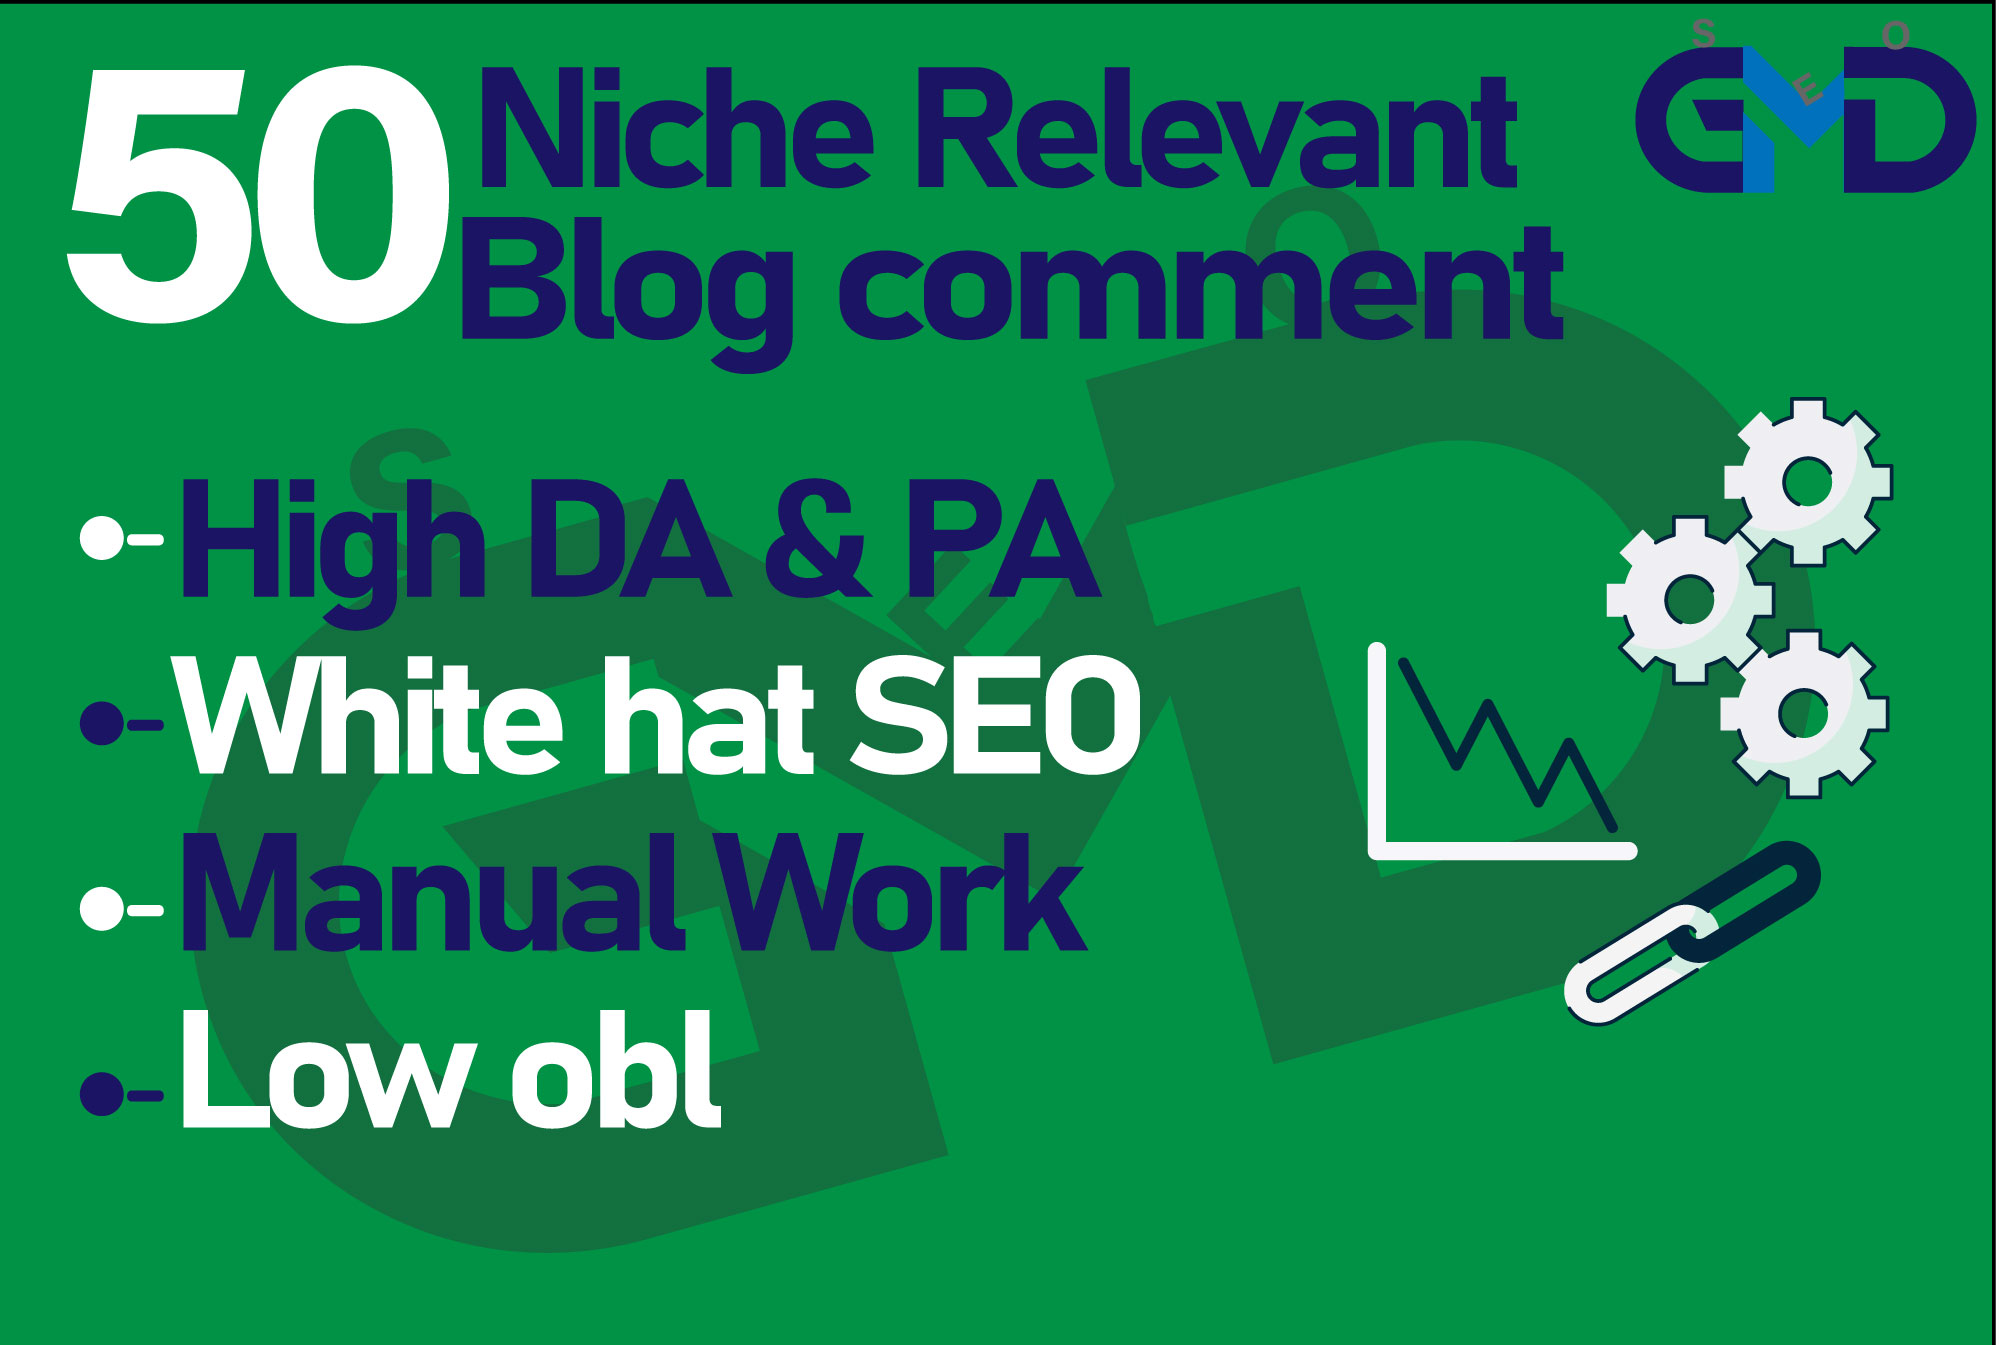 I will create 50 low obl niche relevant blog comment seo